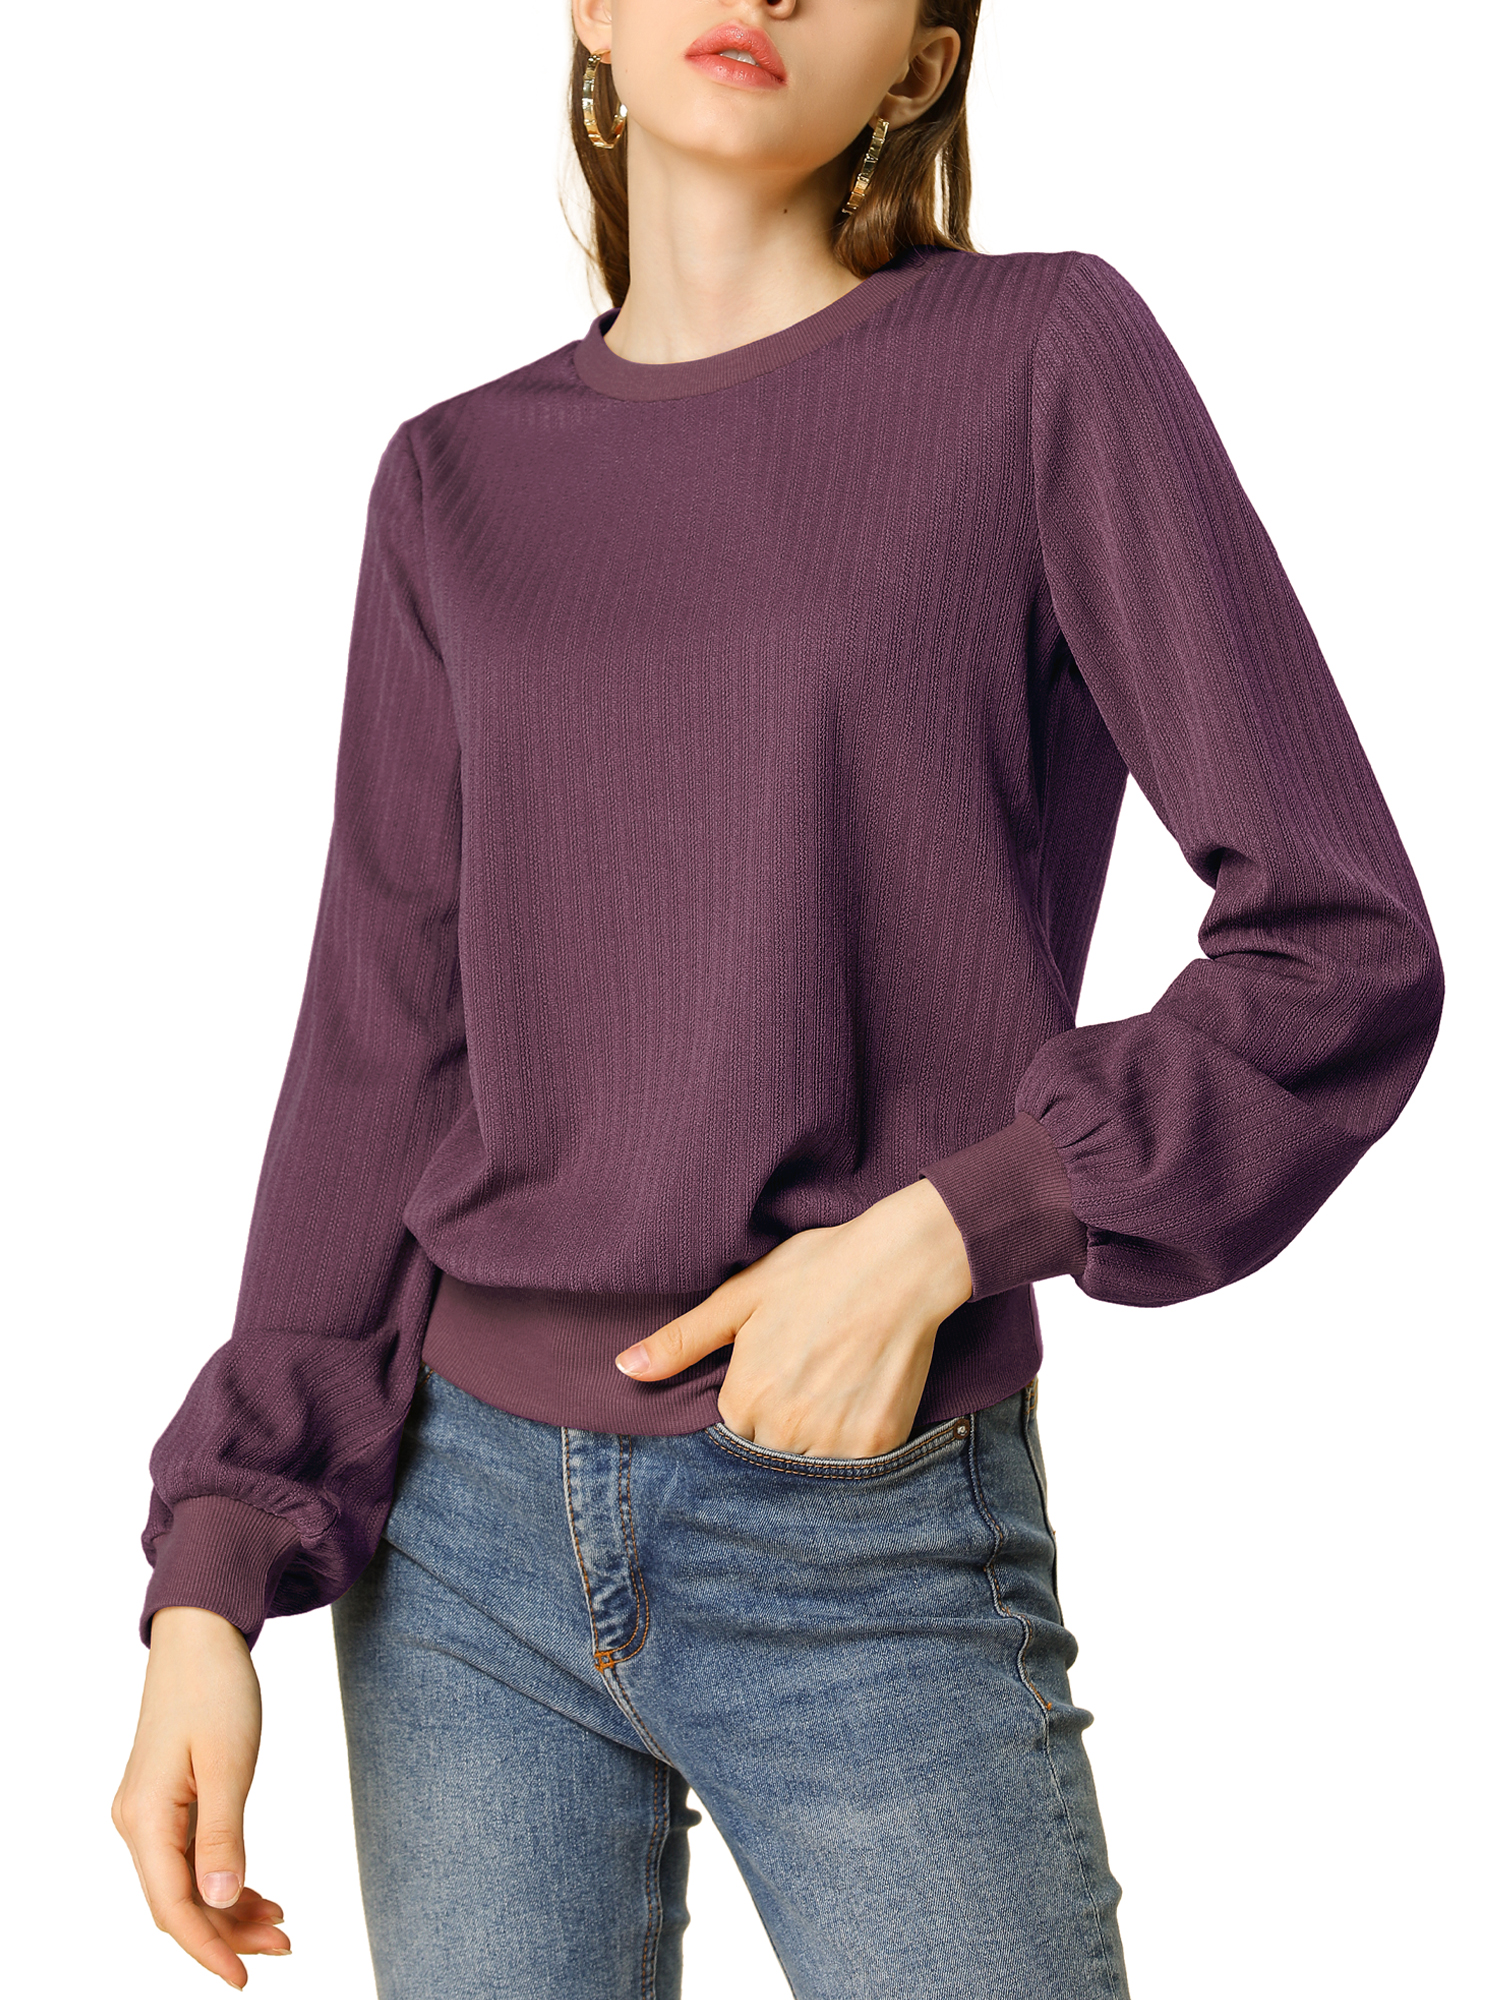 Allegra K Women's Lantern Sleeves Blouson Ribbed Top Sweater Gray Purple L